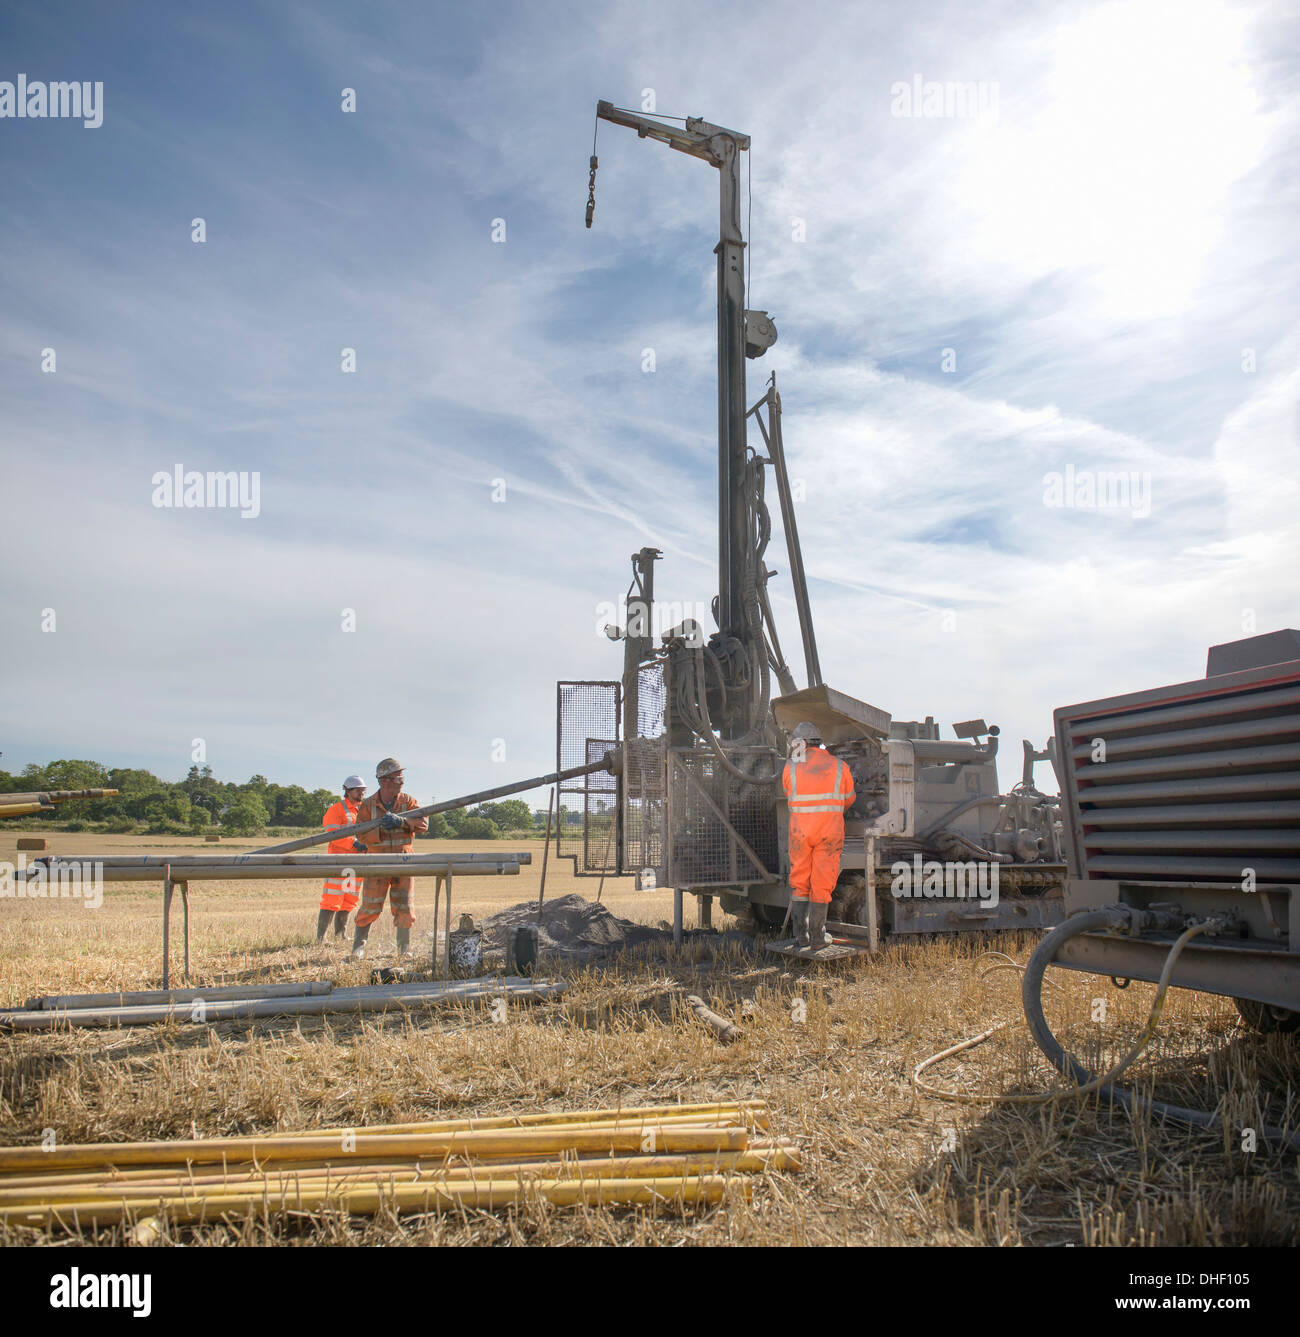 Small team of workers operating drilling rig in field - Stock Image